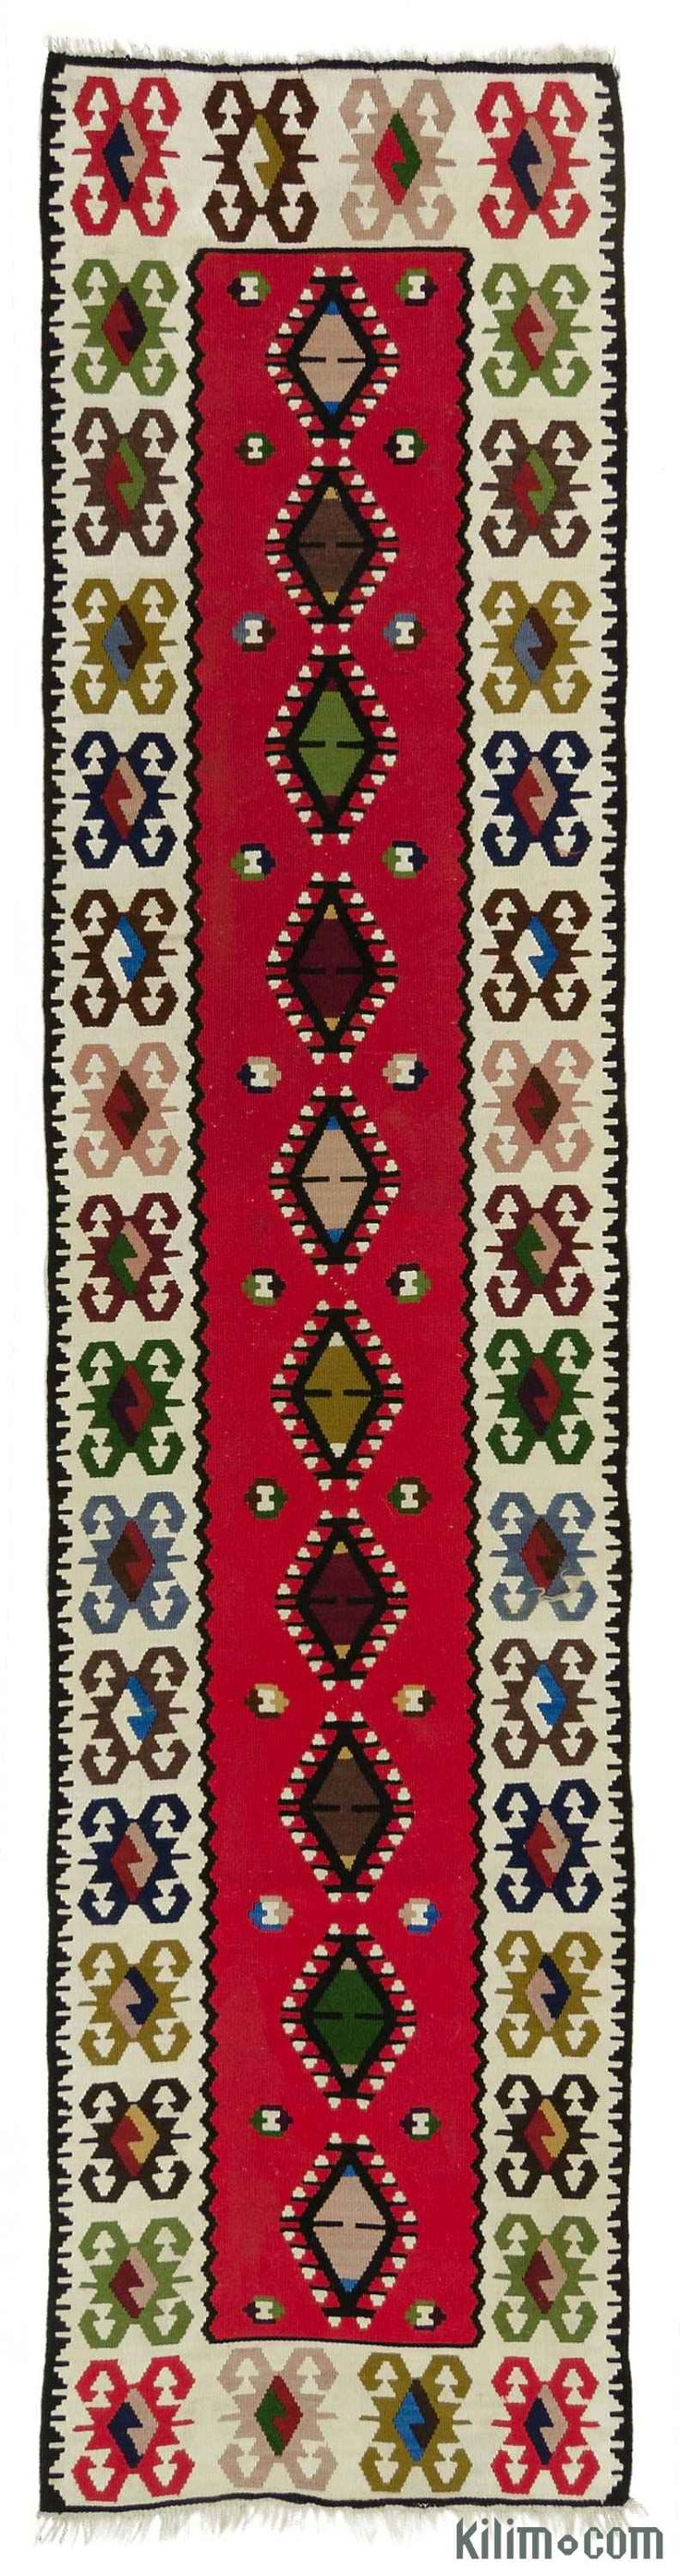 Vintage Sharkoy kilim runner rug around 40 years old and in very good condition.